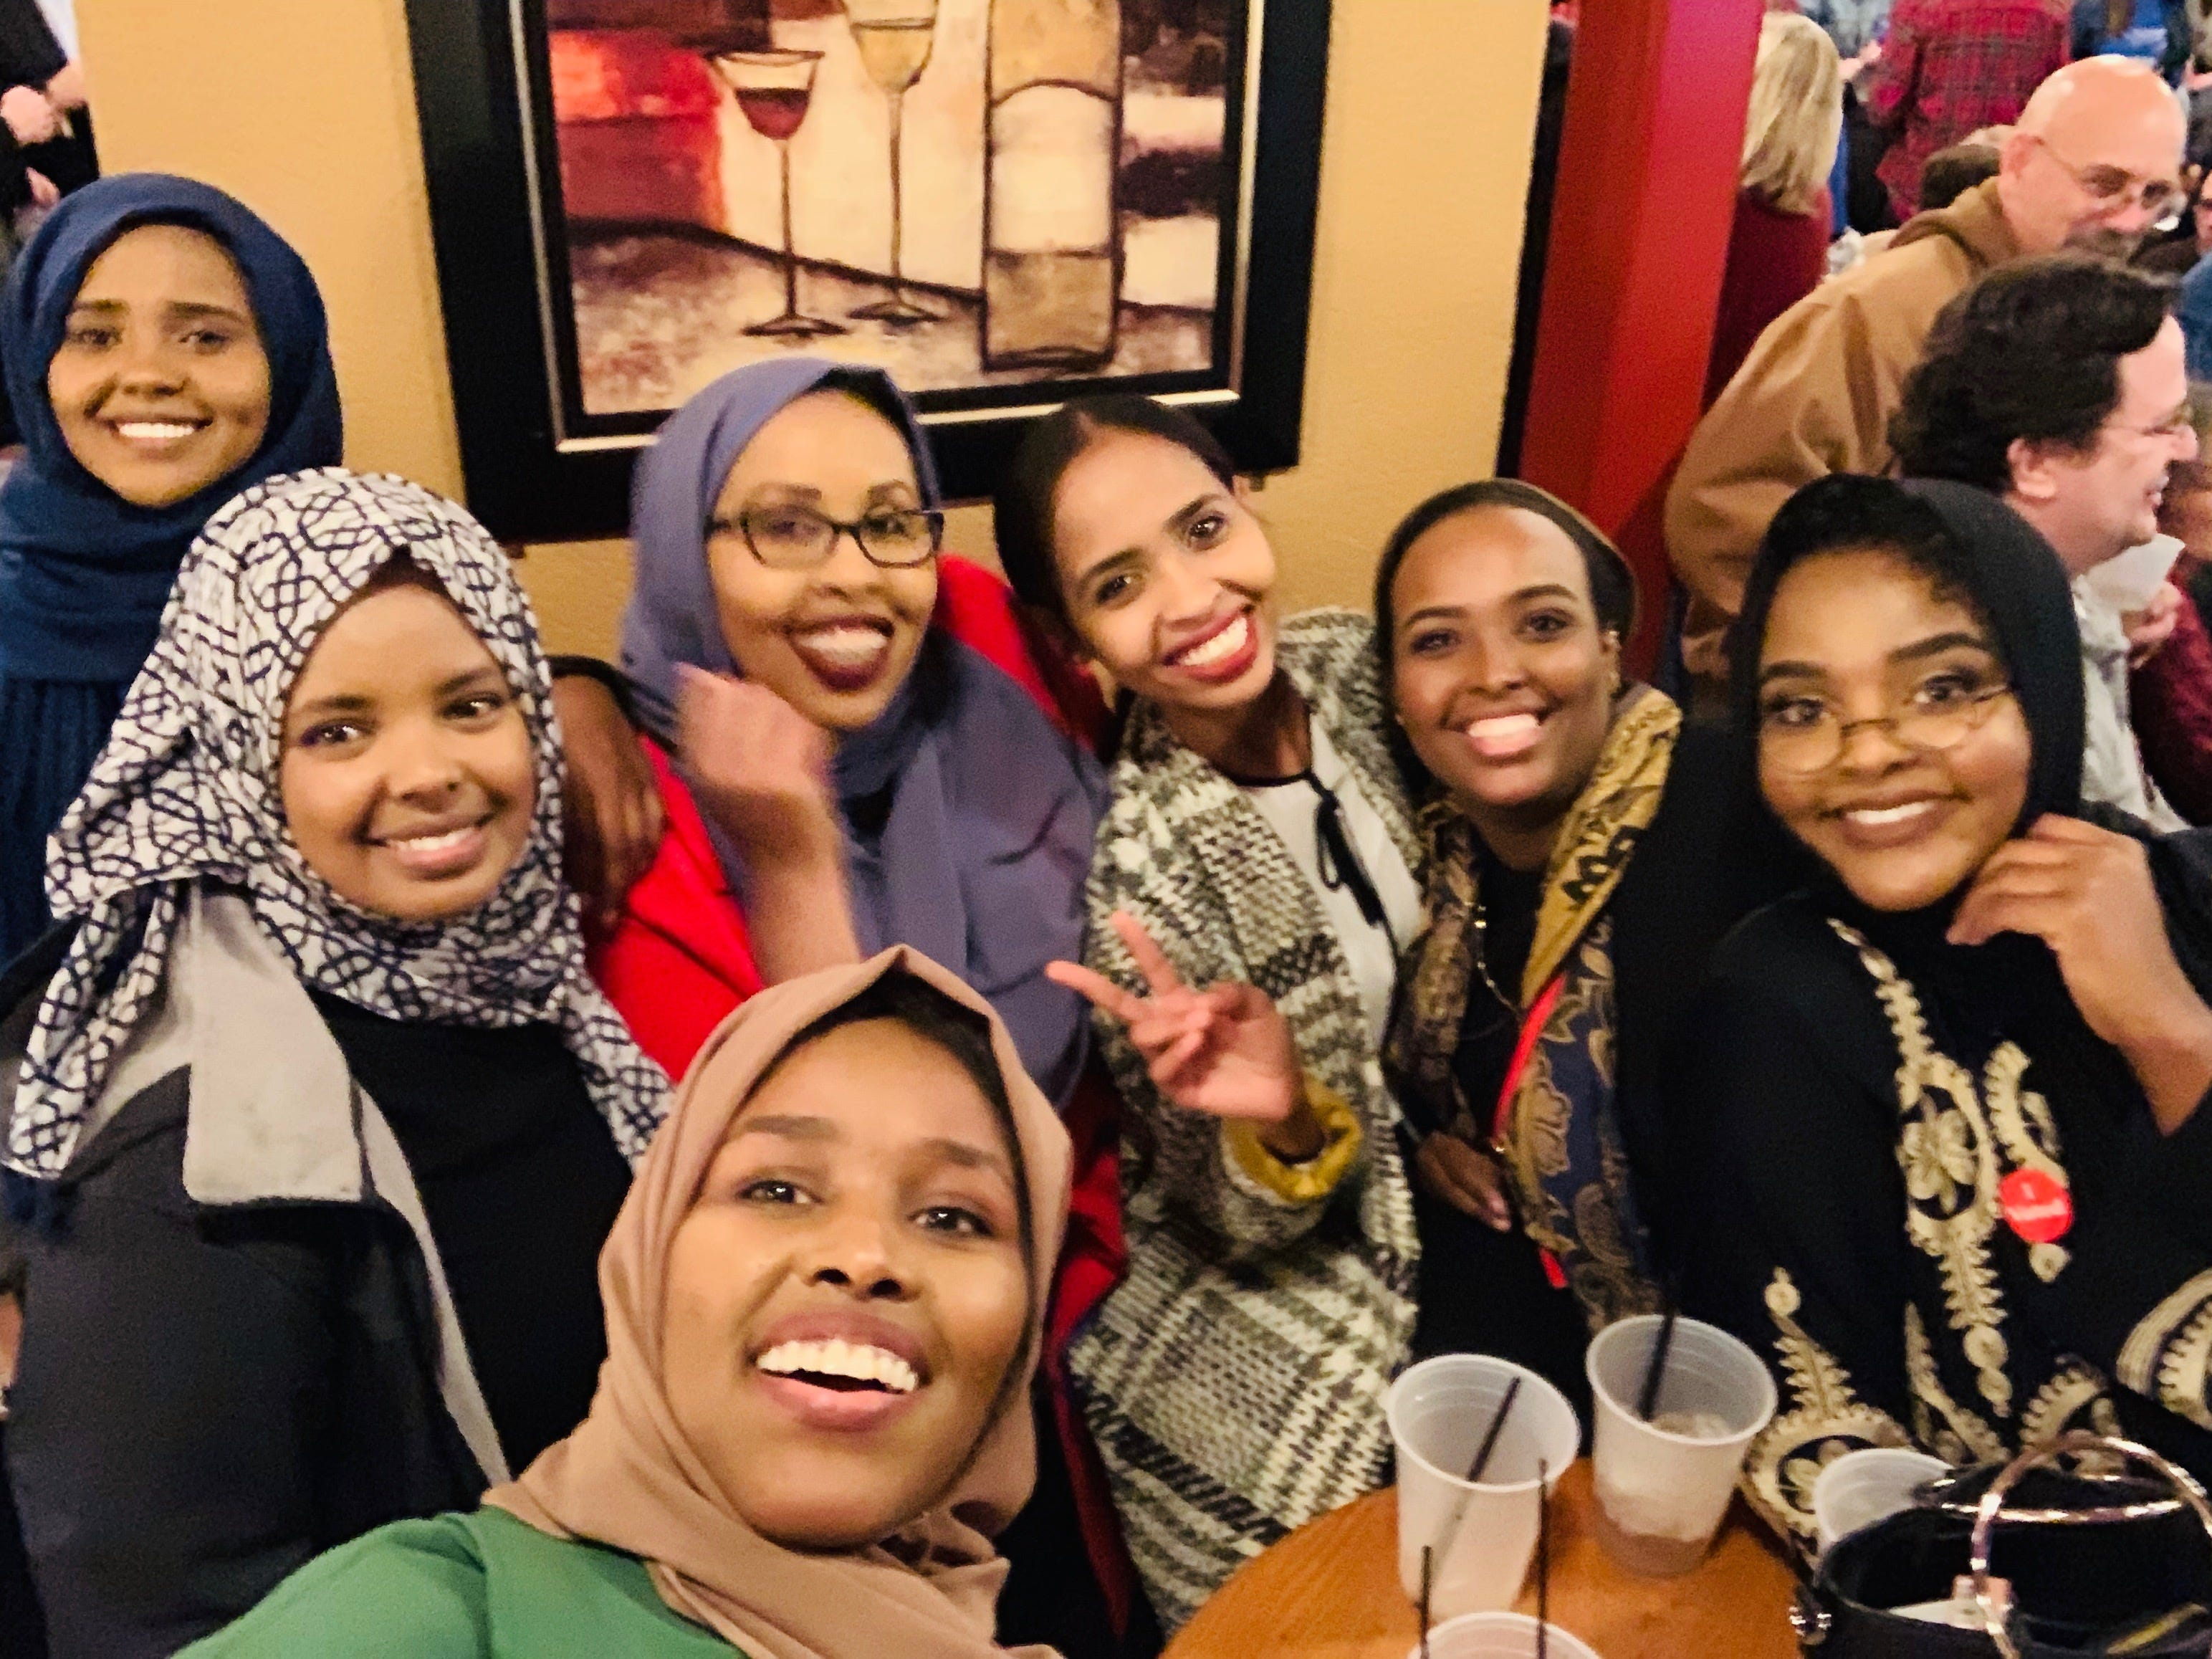 By voting, Somalis commit to Minnesota and inspire younger generations